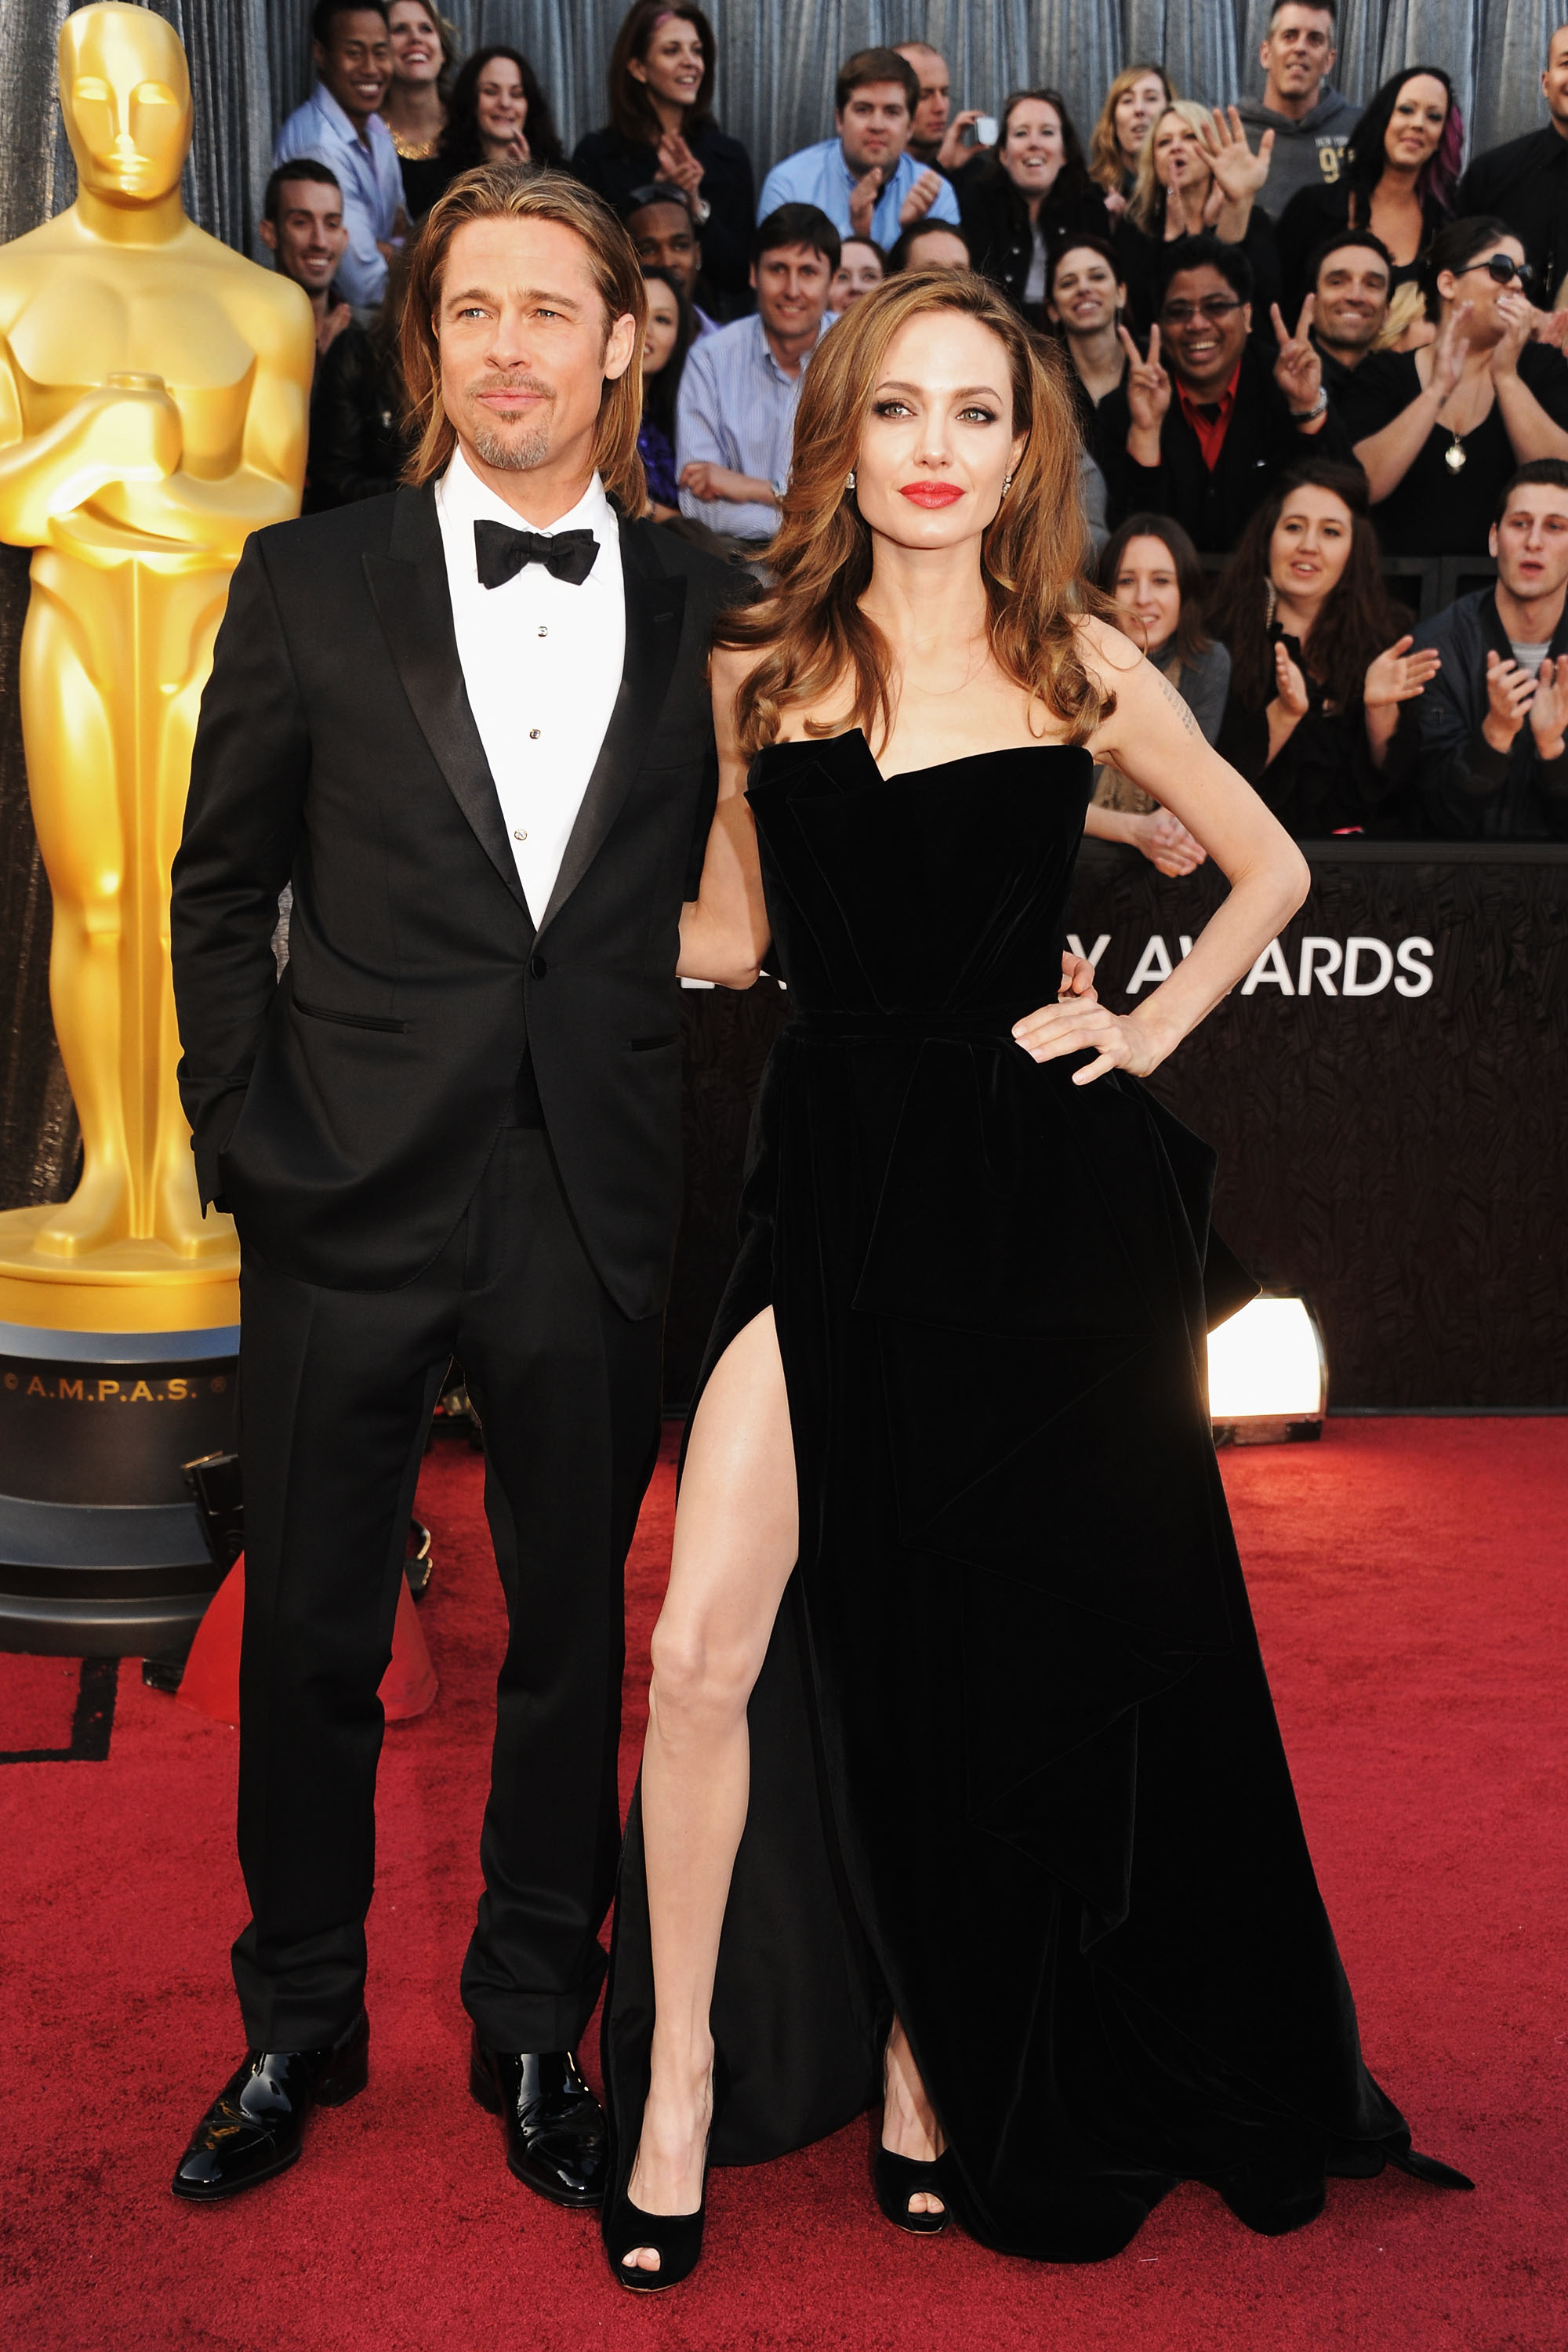 Brad Pitt and Angelina Jolie arrive at the 84th Annual Academy Awards on Feb. 26, 2012 in Hollywood, Calif.